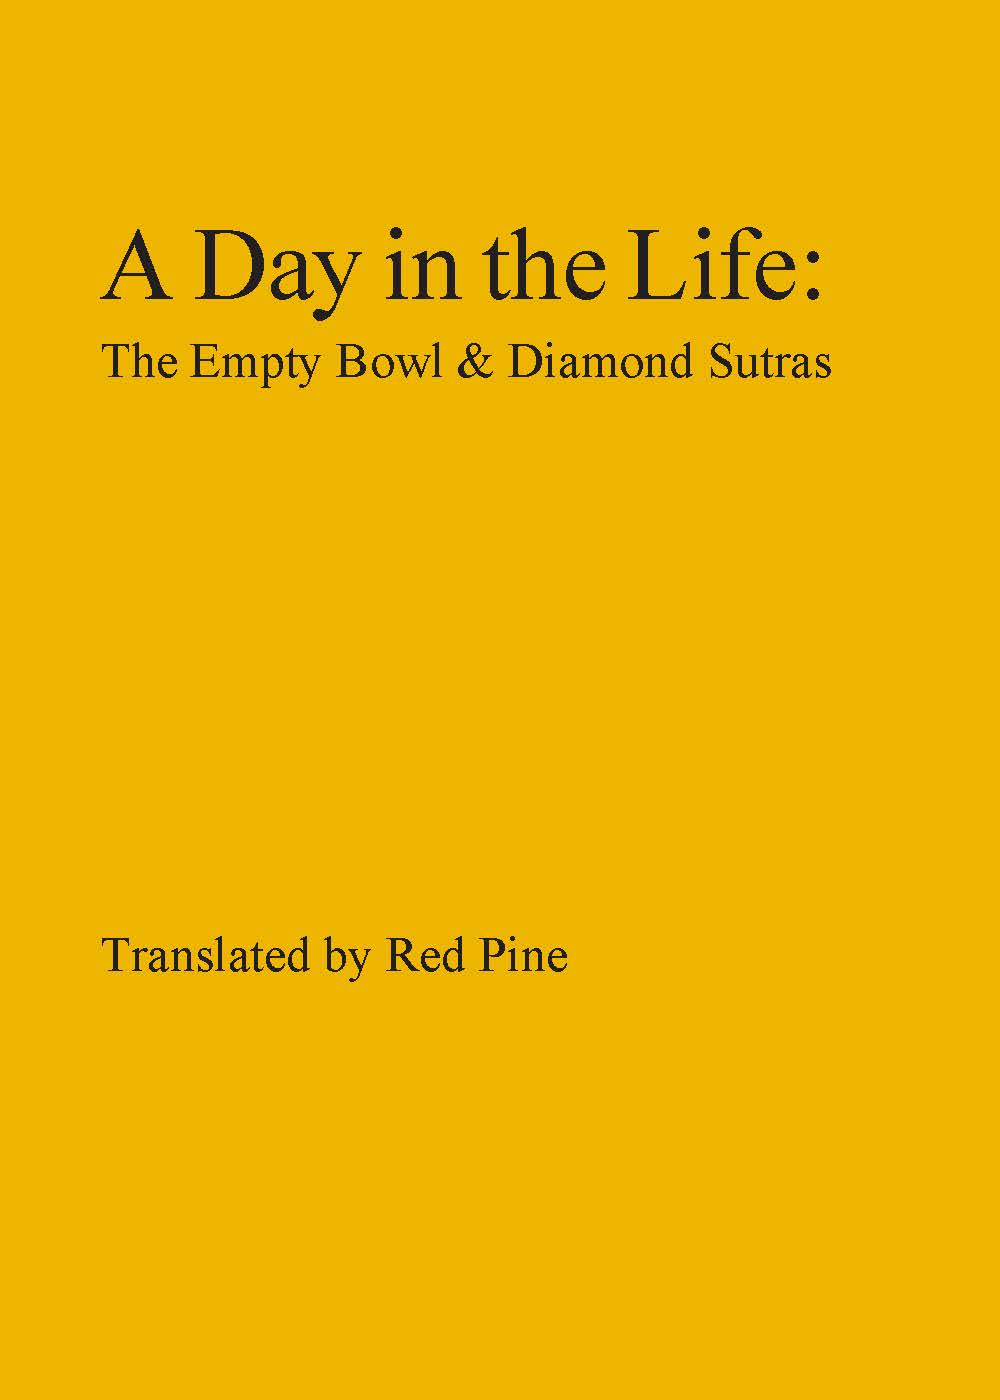 A Day in the Life: the Empty Bowl & Diamond Sutras